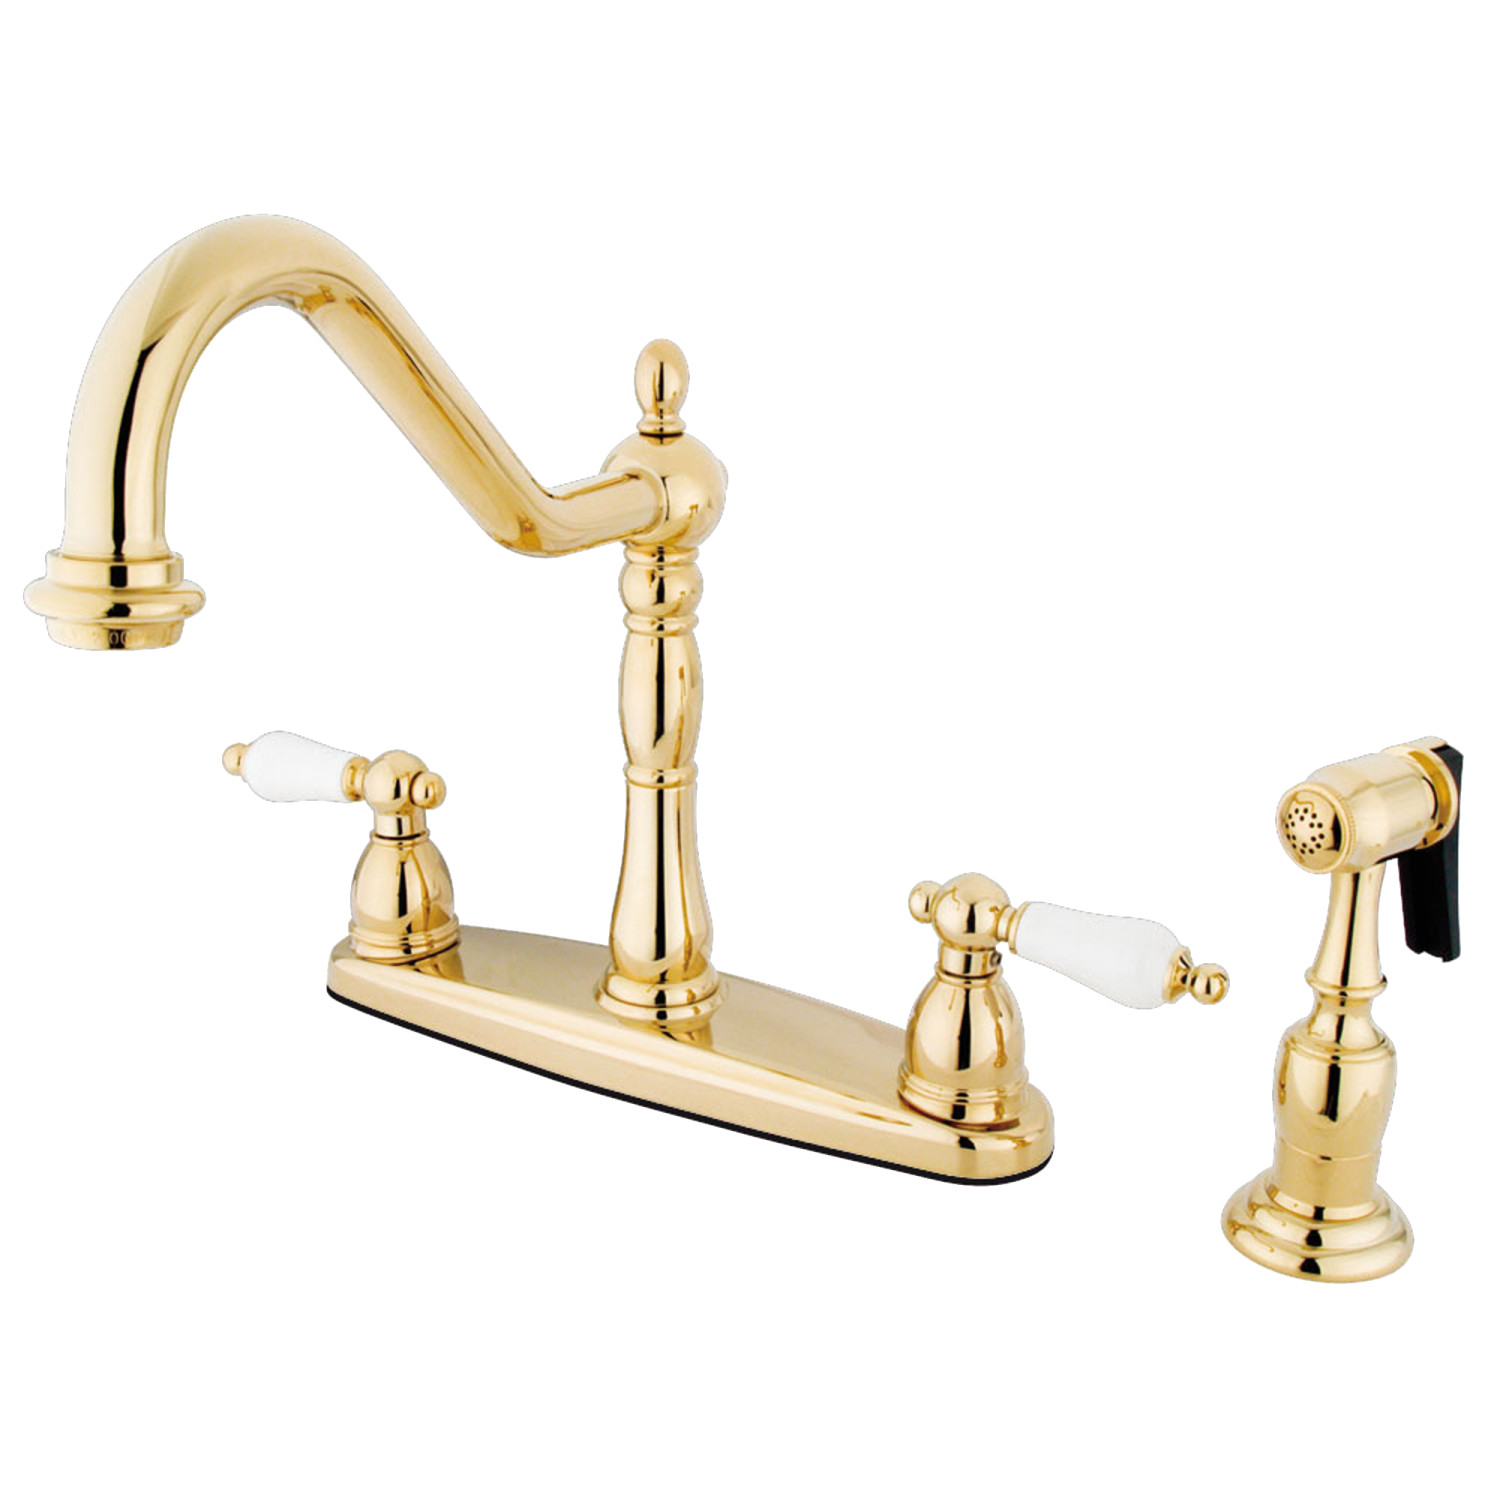 Elements of Design EB1752PLBS Centerset Kitchen Faucet, Polished Brass